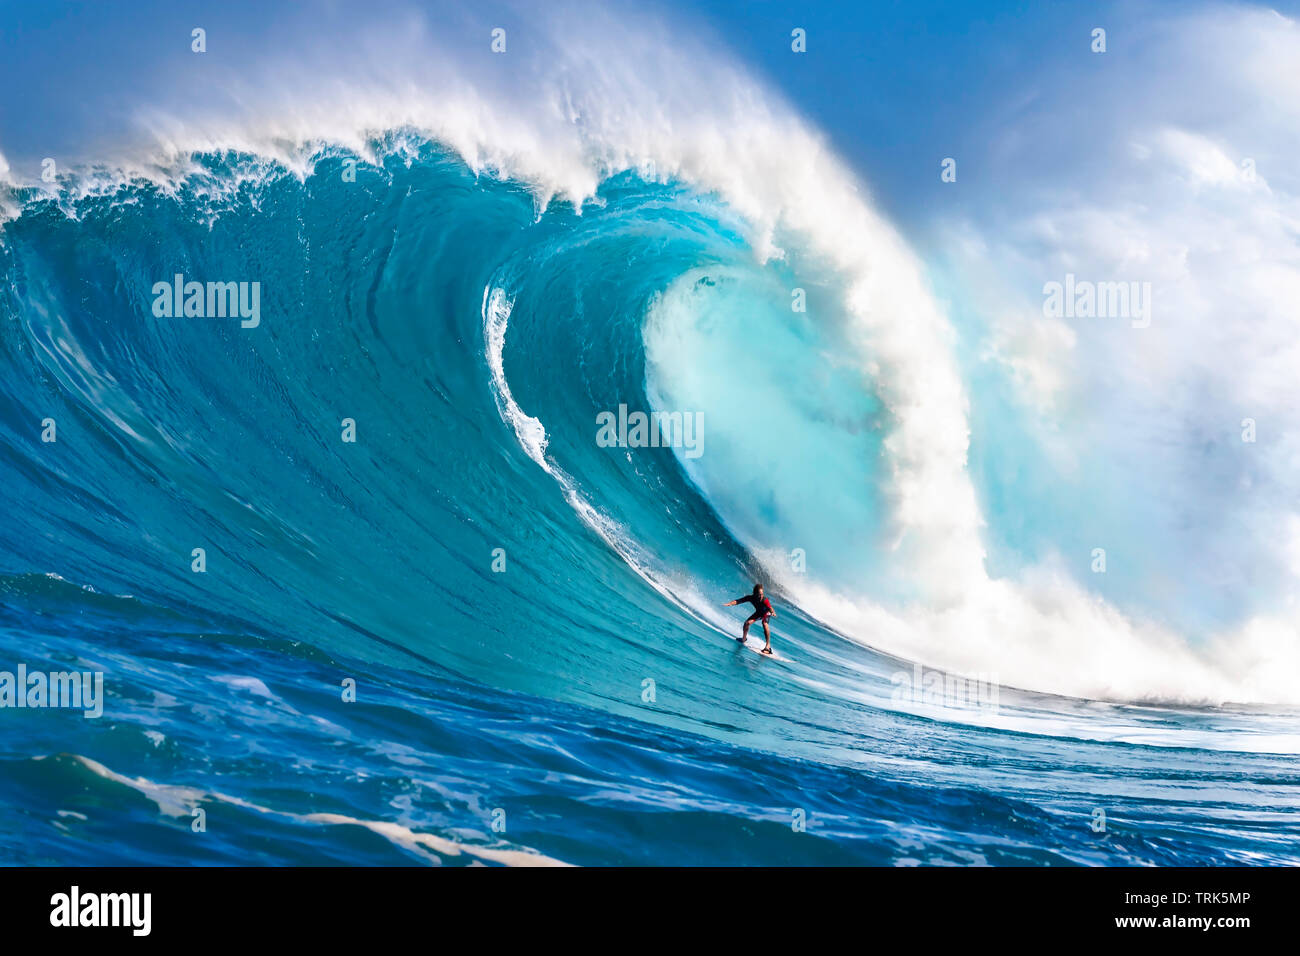 A tow-in surfer drops down the face of Hawaii's big surf at Peahi (Jaws) off Northshore Maui. - Stock Image